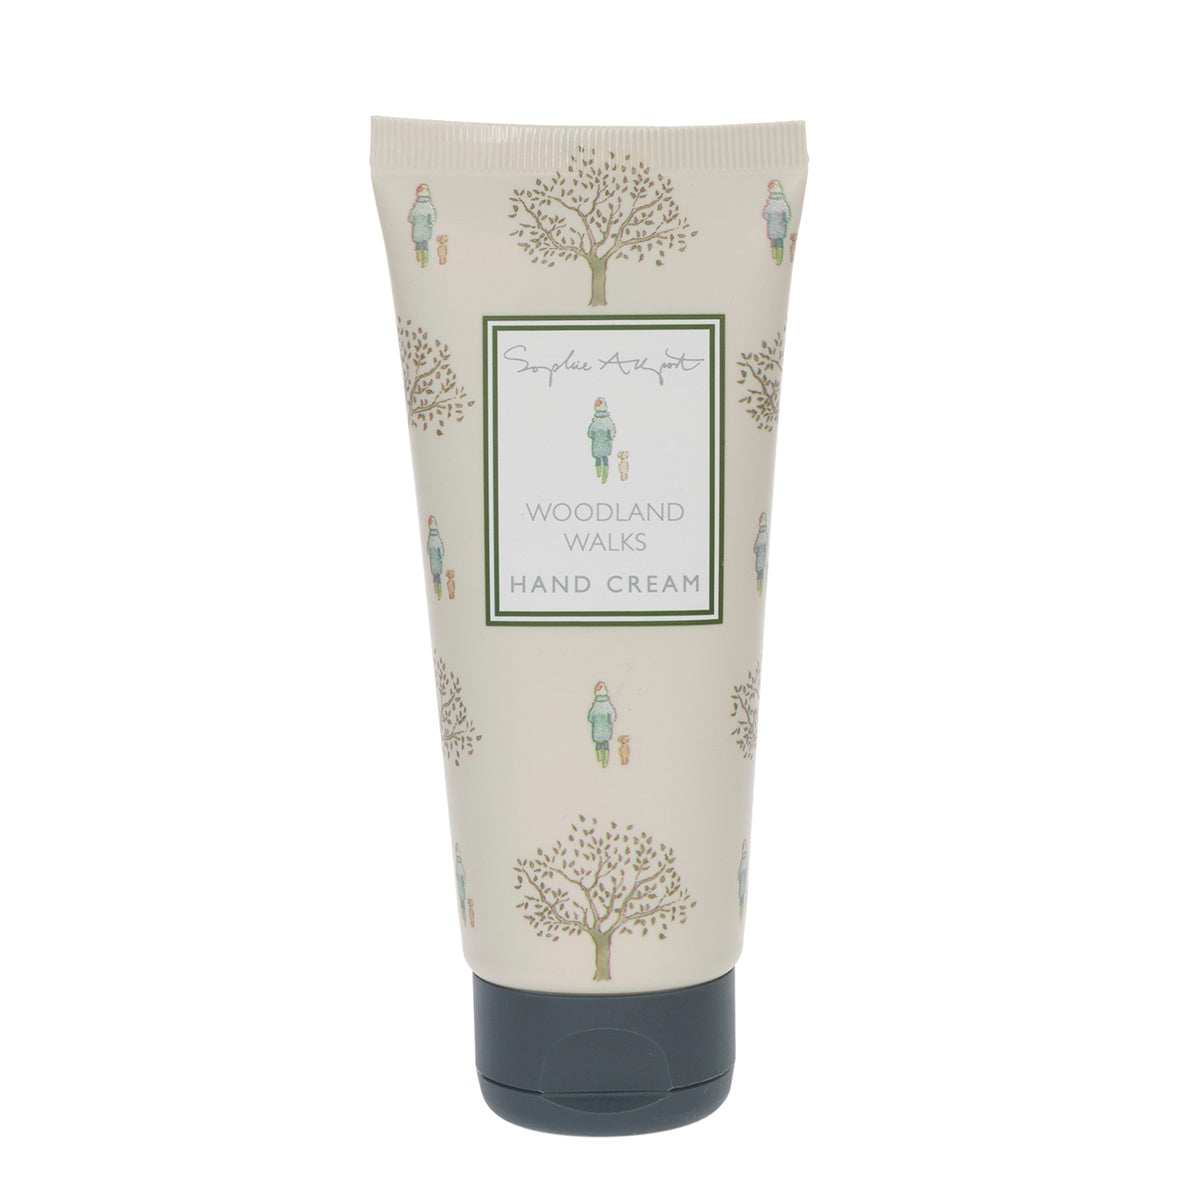 Woodland Walks Hand Cream